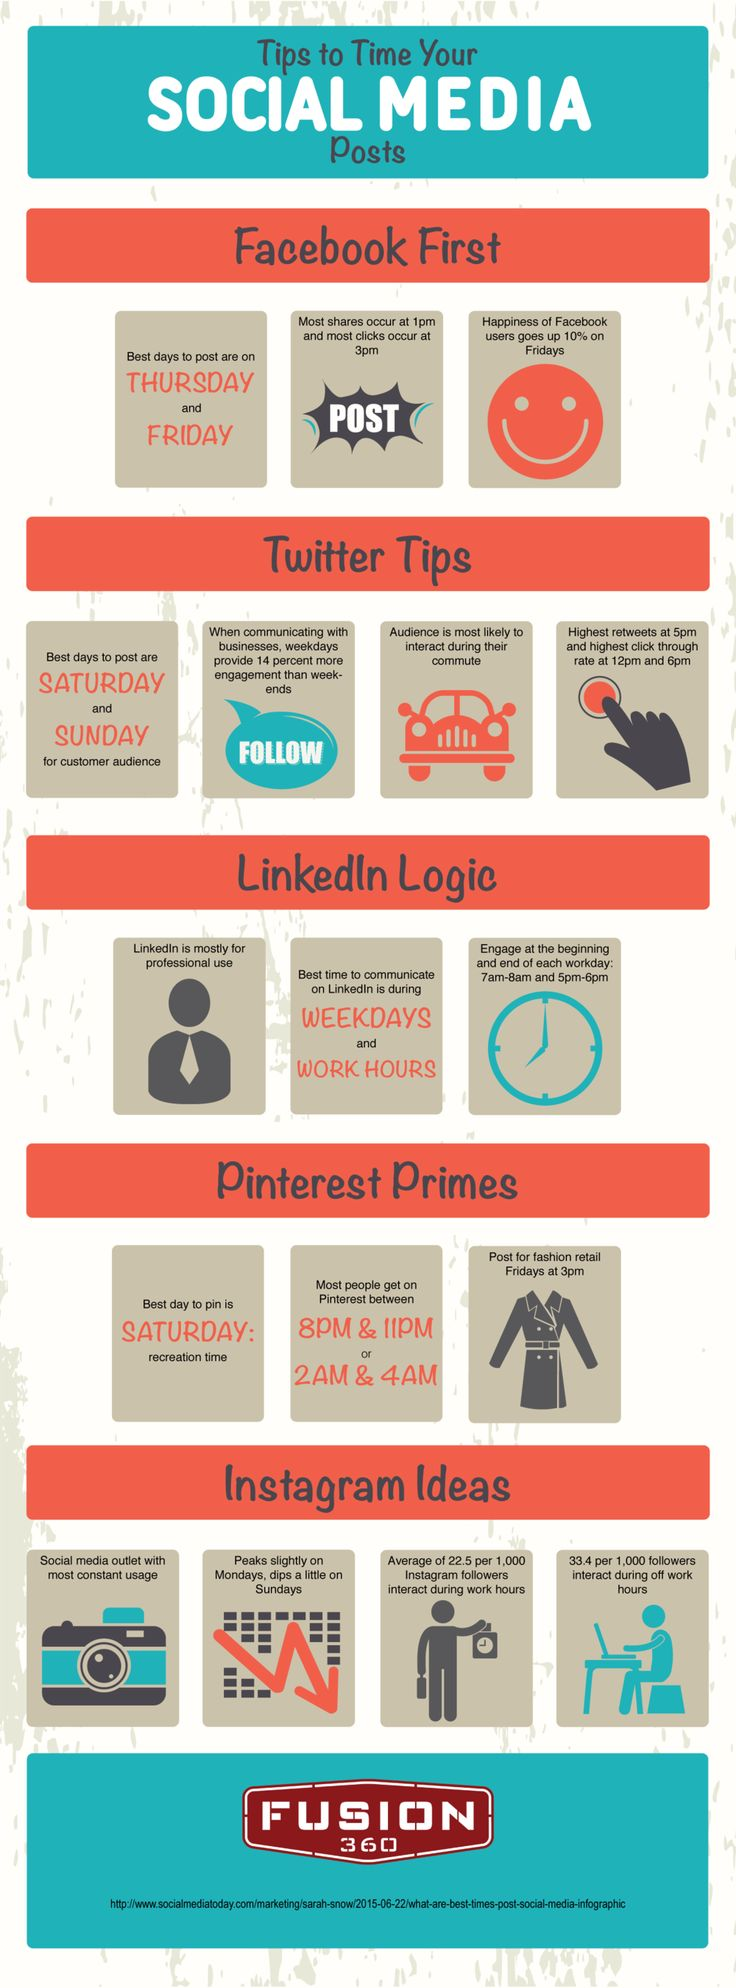 What Are the Best Times To Post on Facebook, Twitter, LinkedIn, Pinterest and Instagram? - https://blog.dashburst.com/infographic/what-are-the-best-times-to-post-on-facebook-twitter-linkedin-pinterest-and-instagram/